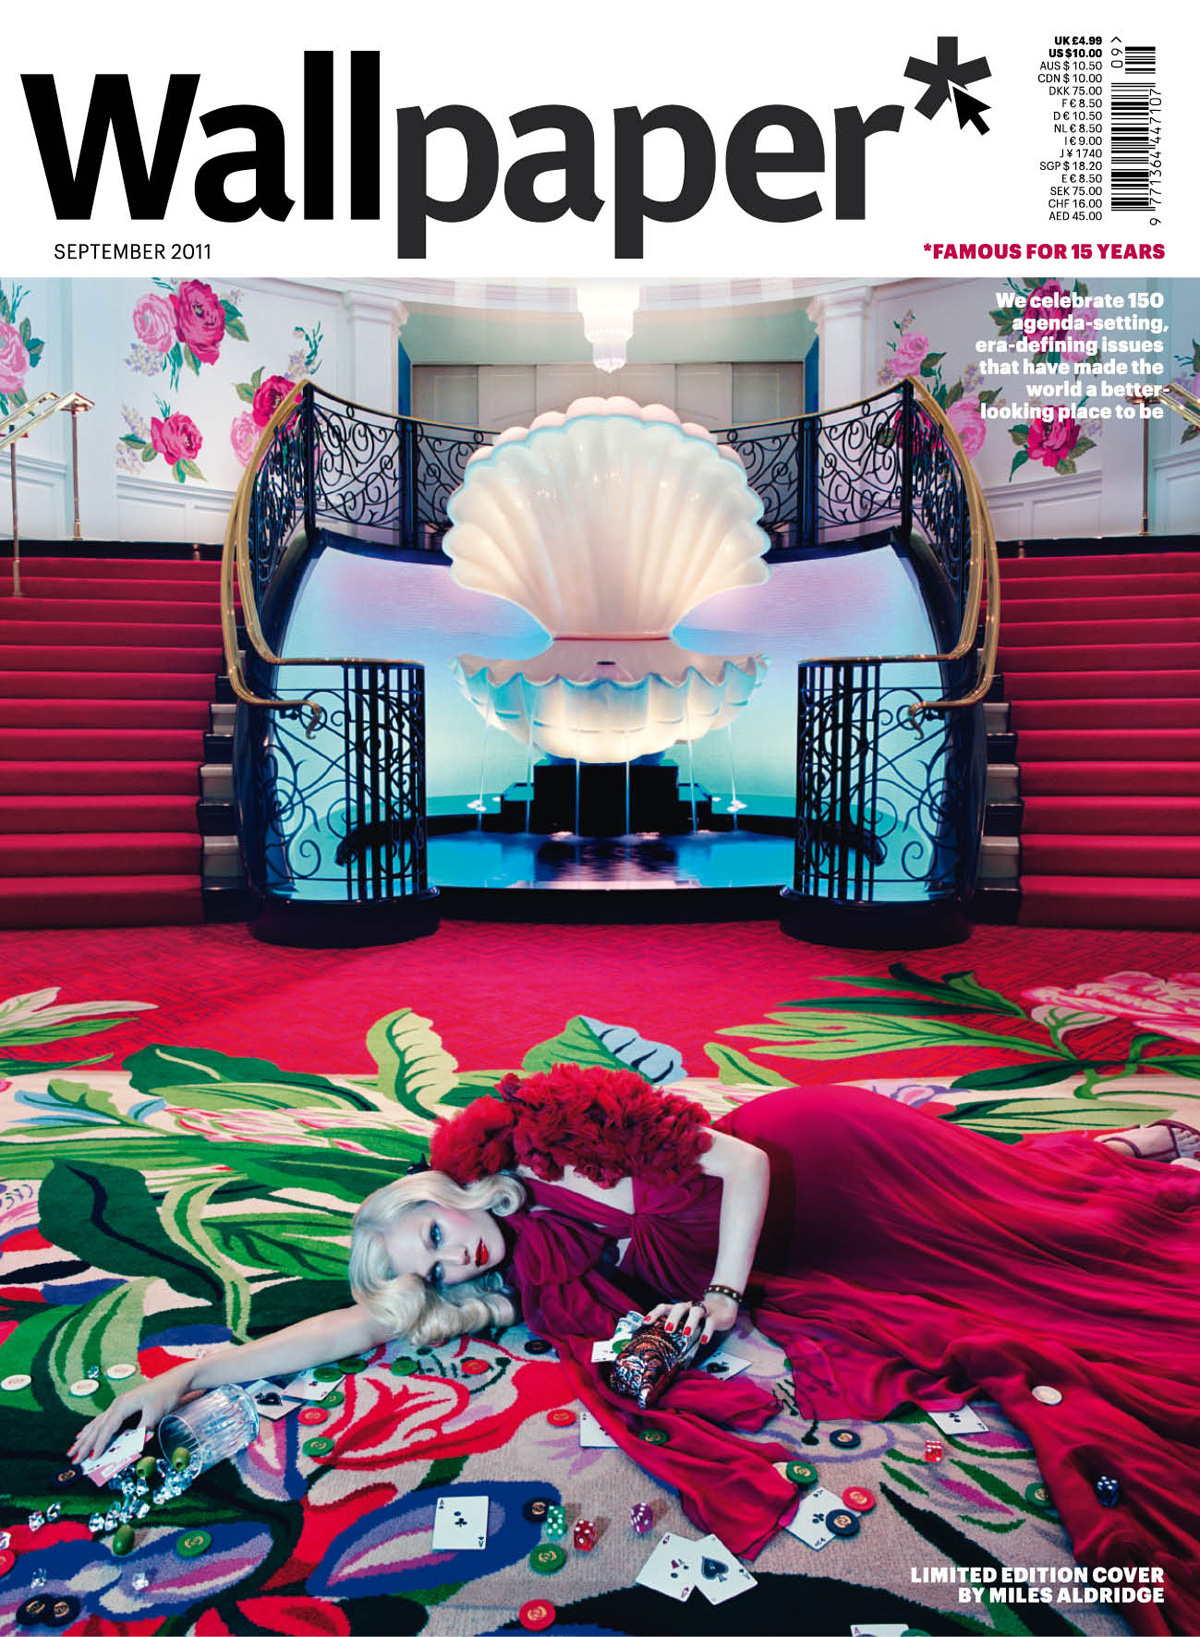 Wallpaper 2011 September Fashion Issue Ltd Edition Cover By Miles Aldridge